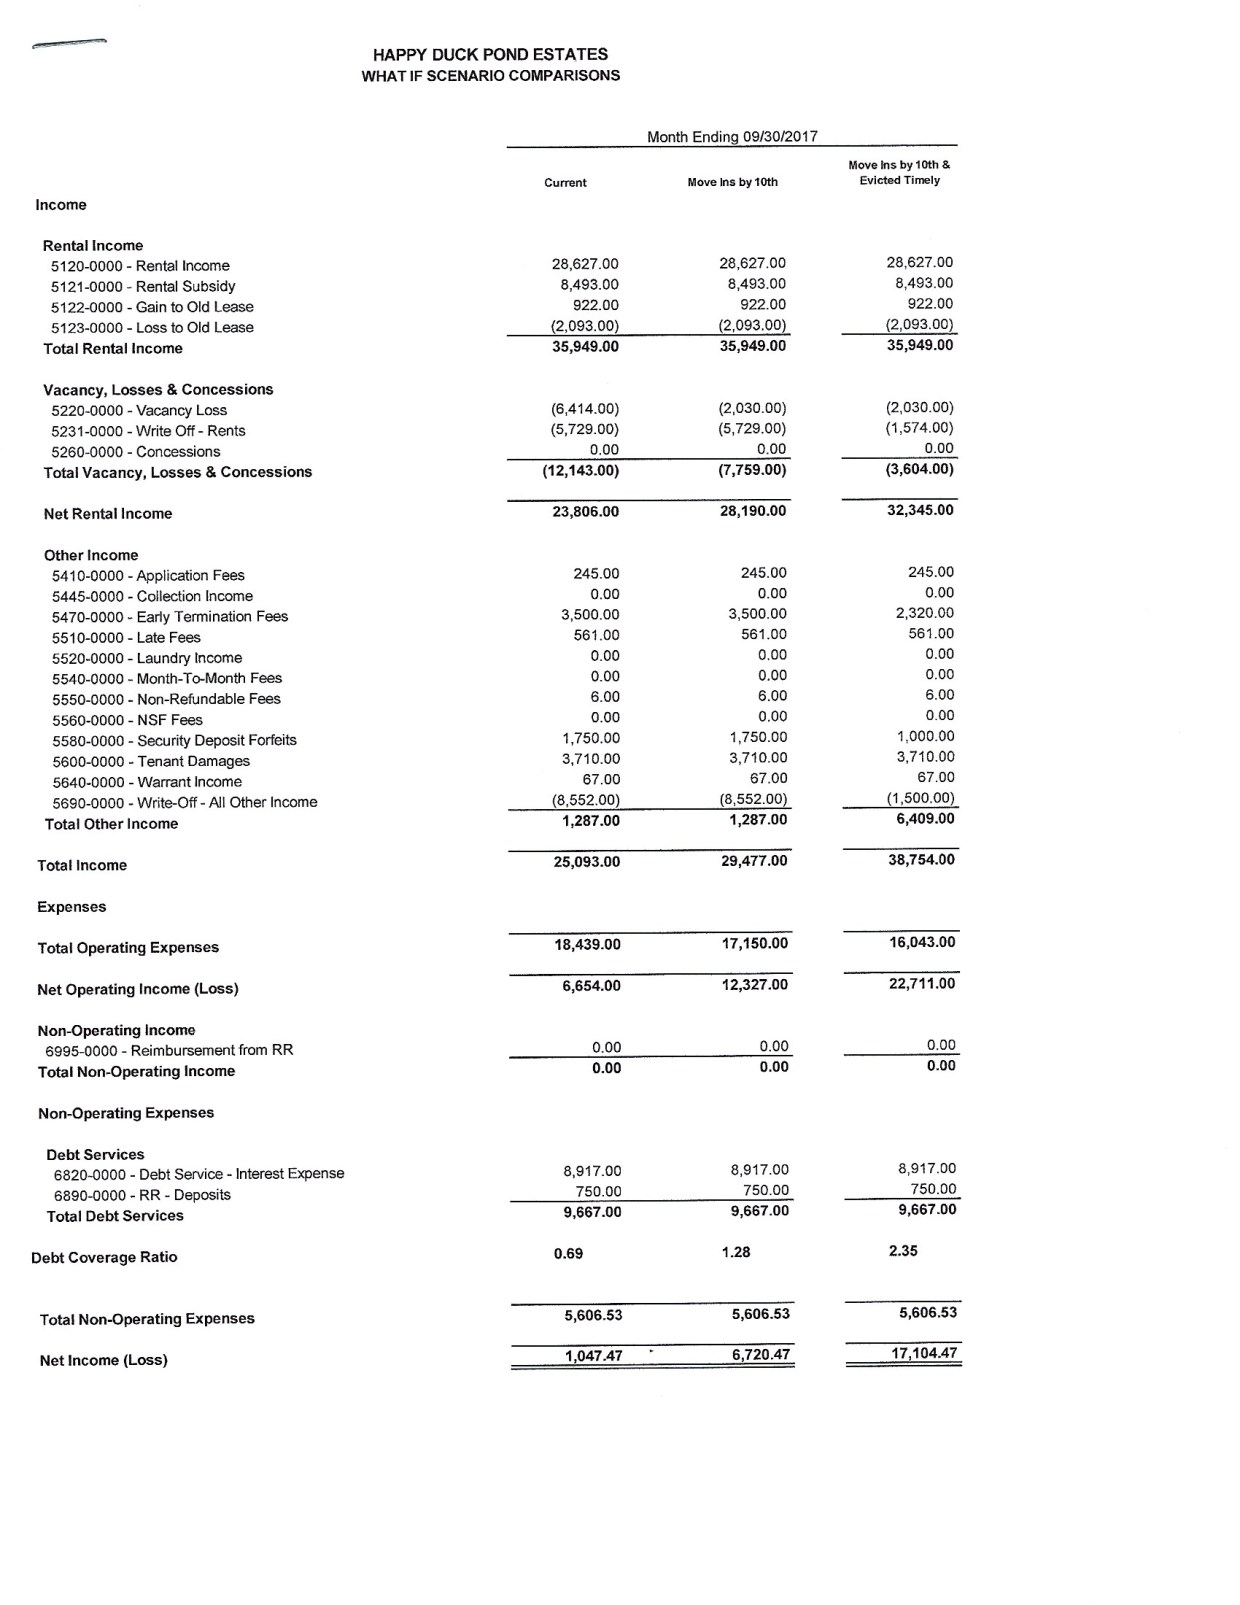 Multifamily Sample Financial Statement Comparison Chart